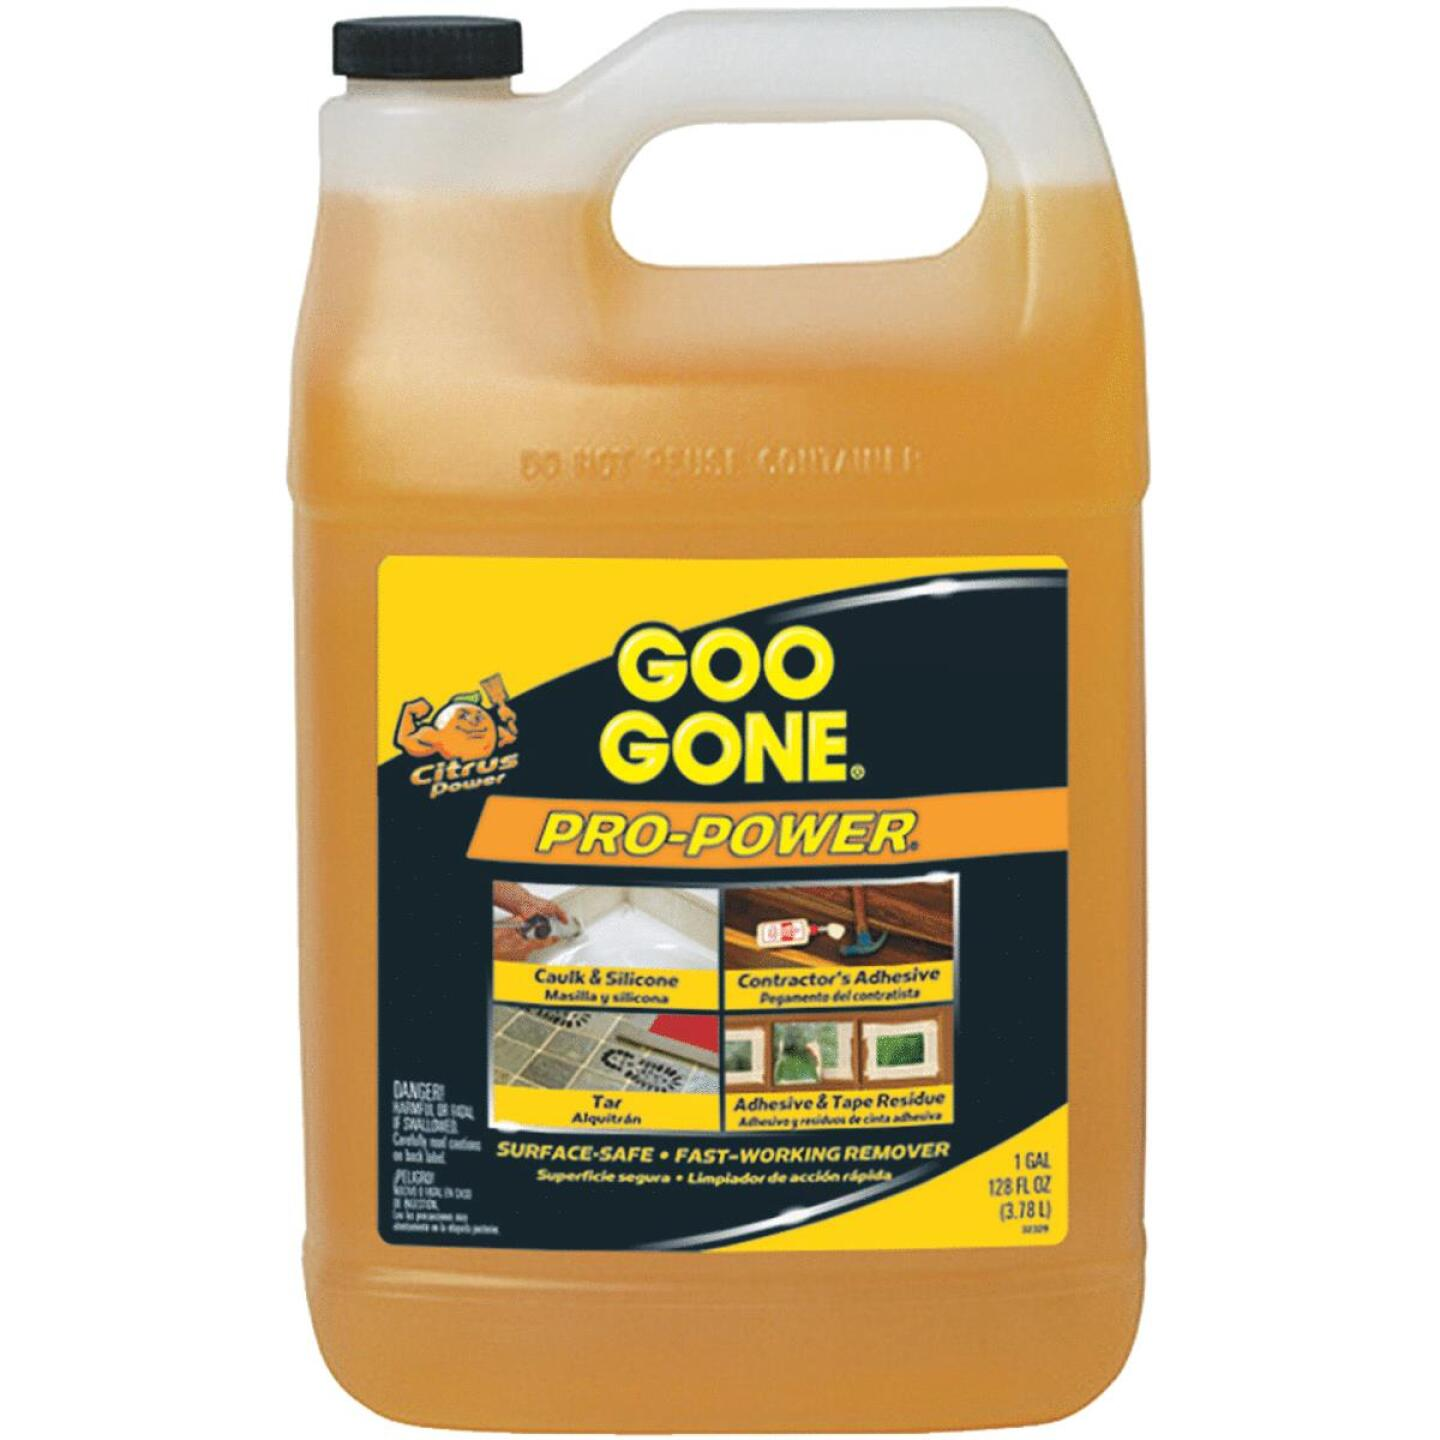 Goo Gone 1 Gal. Pro-Power Adhesive Remover Image 333